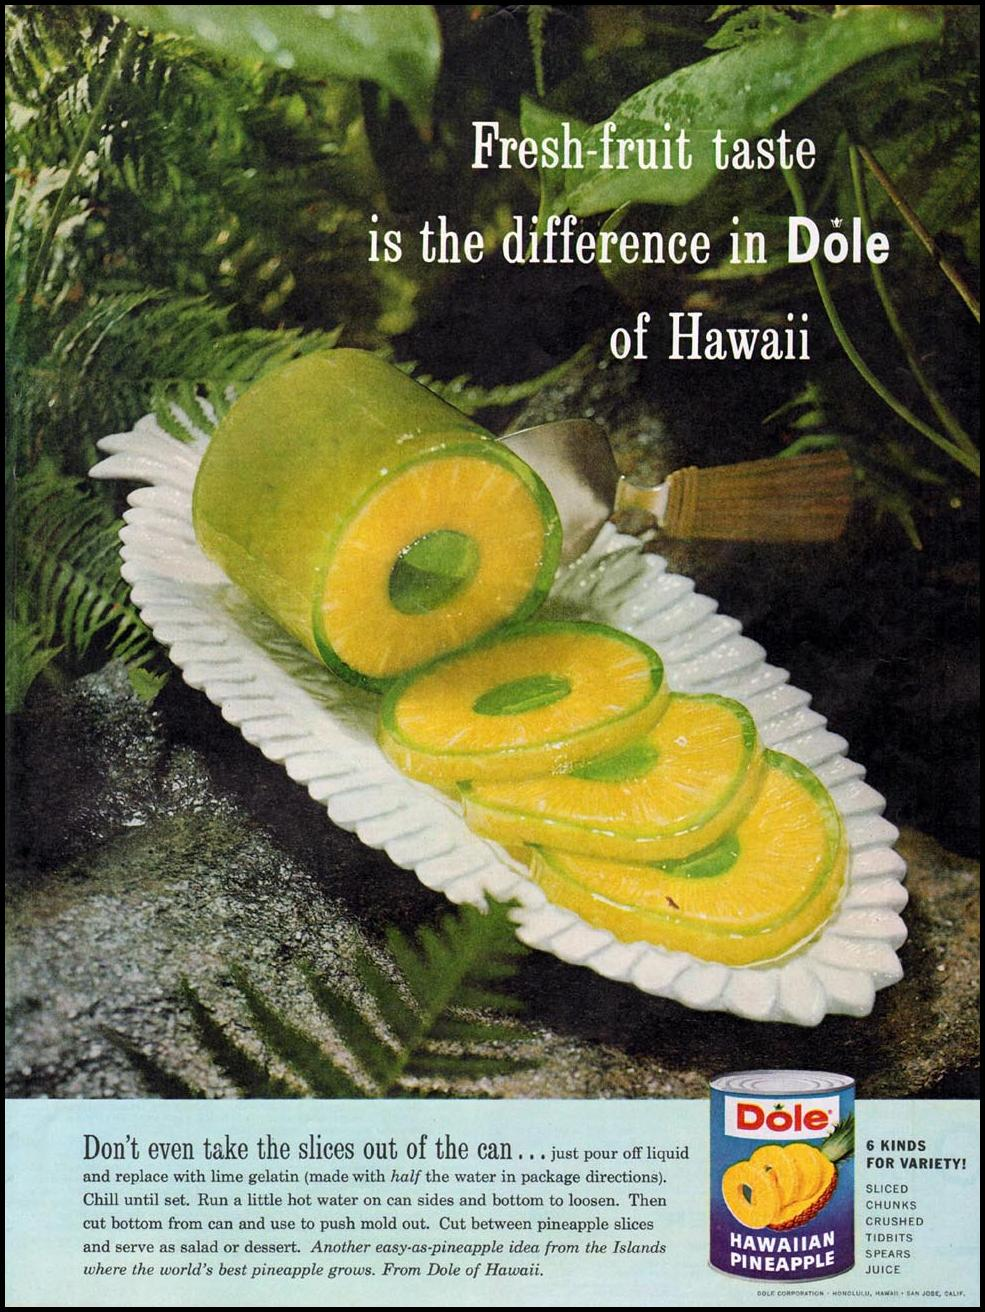 DOLE HAWAIIAN PINEAPPLE LADIES' HOME JOURNAL 06/01/1961 p. 32